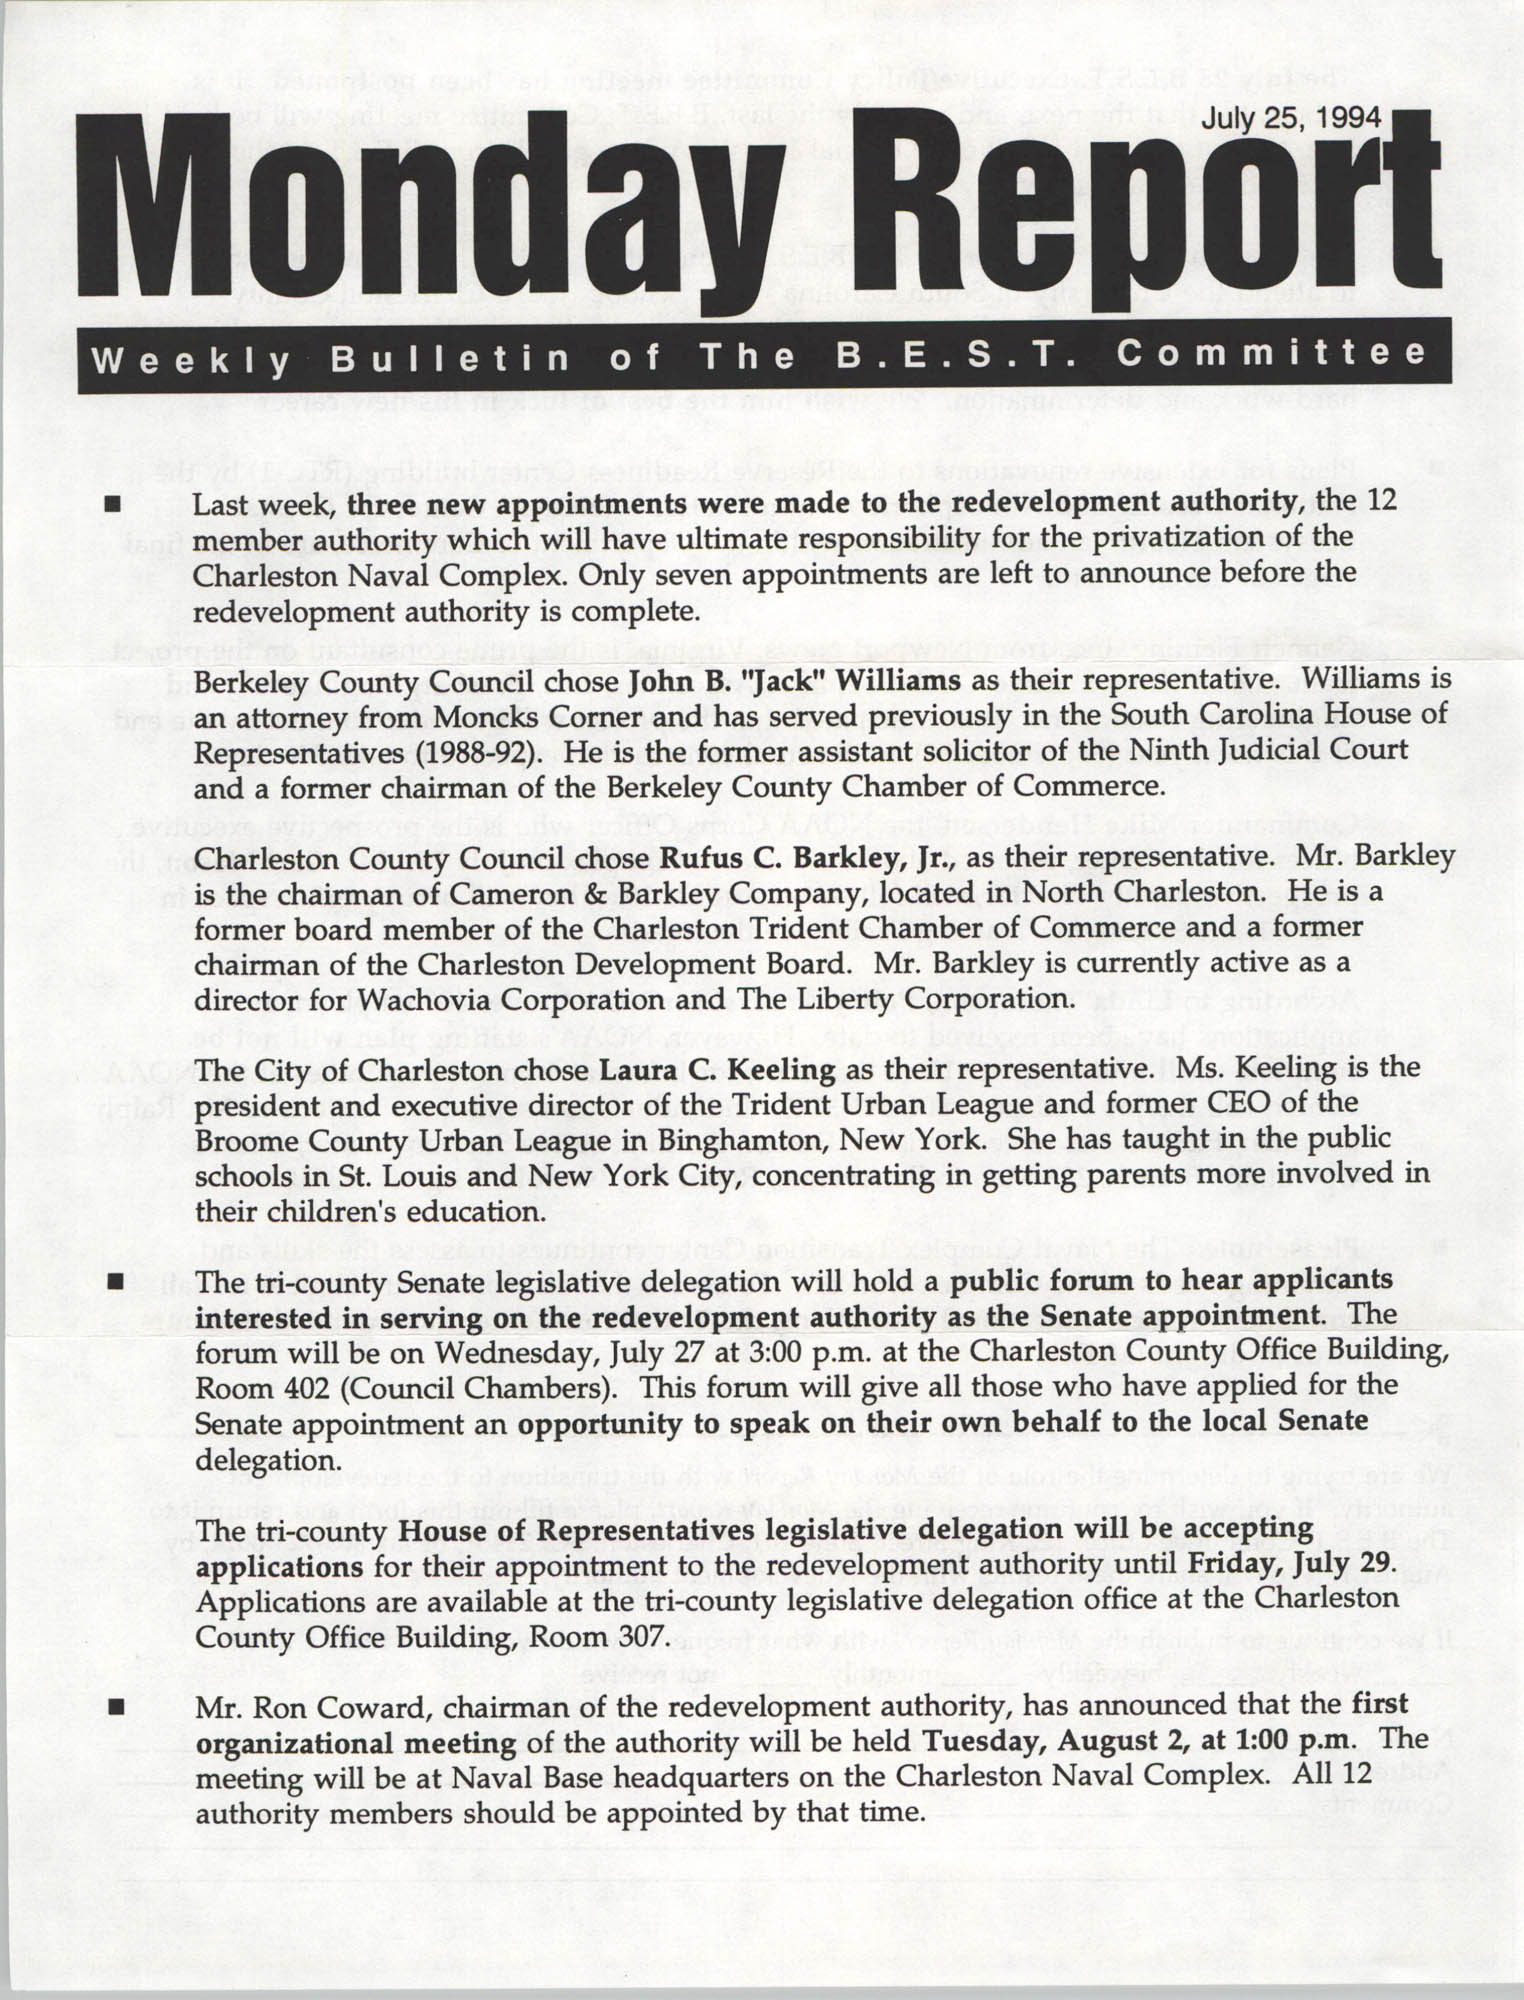 Monday Report, Weekly Bulletin of The B.E.S.T. Committee, July 25, 1994